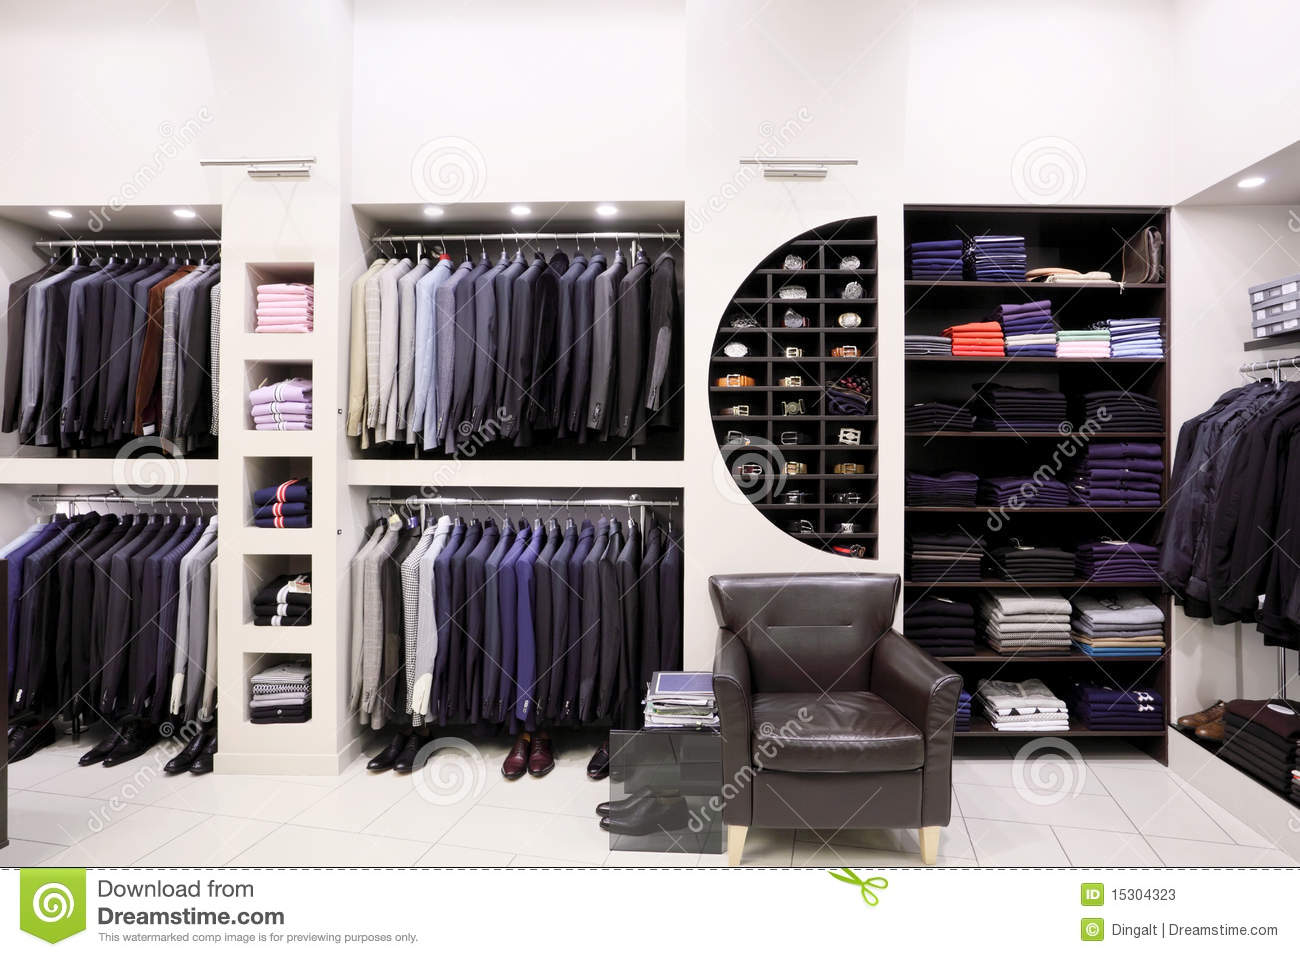 Stylish Men's Clothes In Shop Stock Photos - Image: 15304323